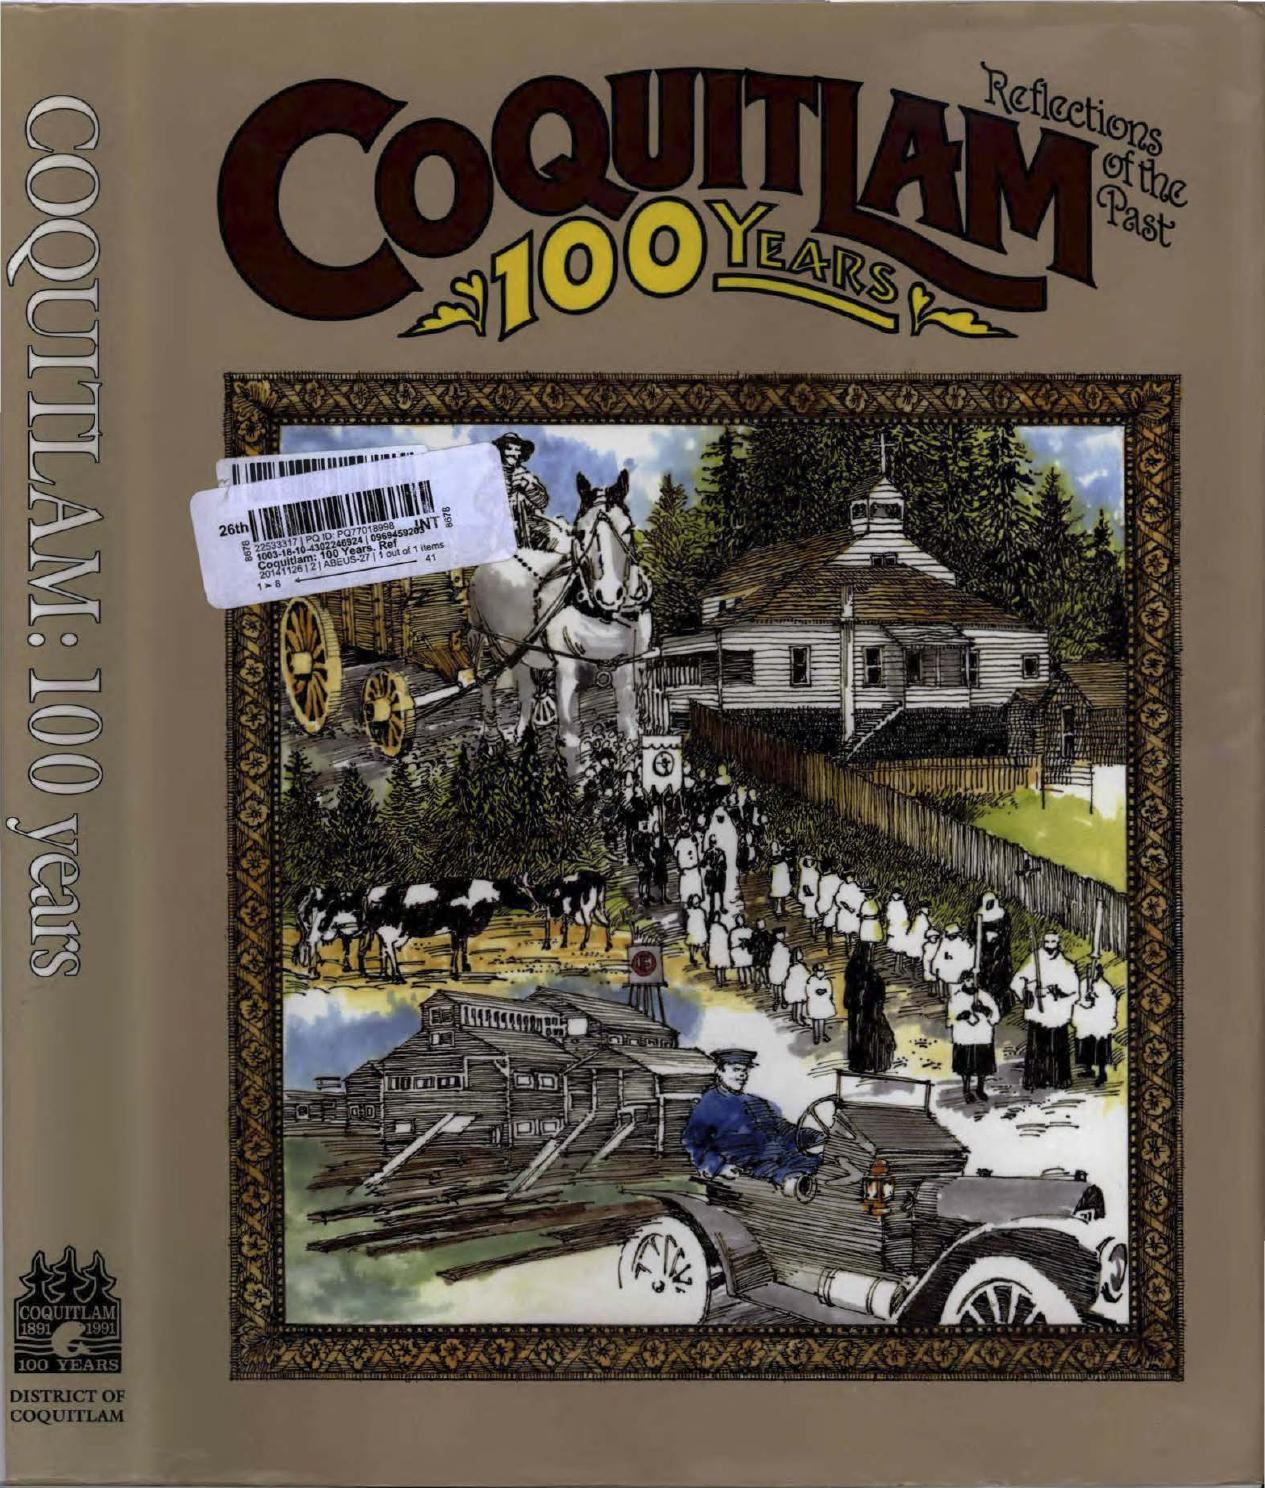 43b2d32c6c Coquitlam 100 years reflections of the past by City of Coquitlam - issuu